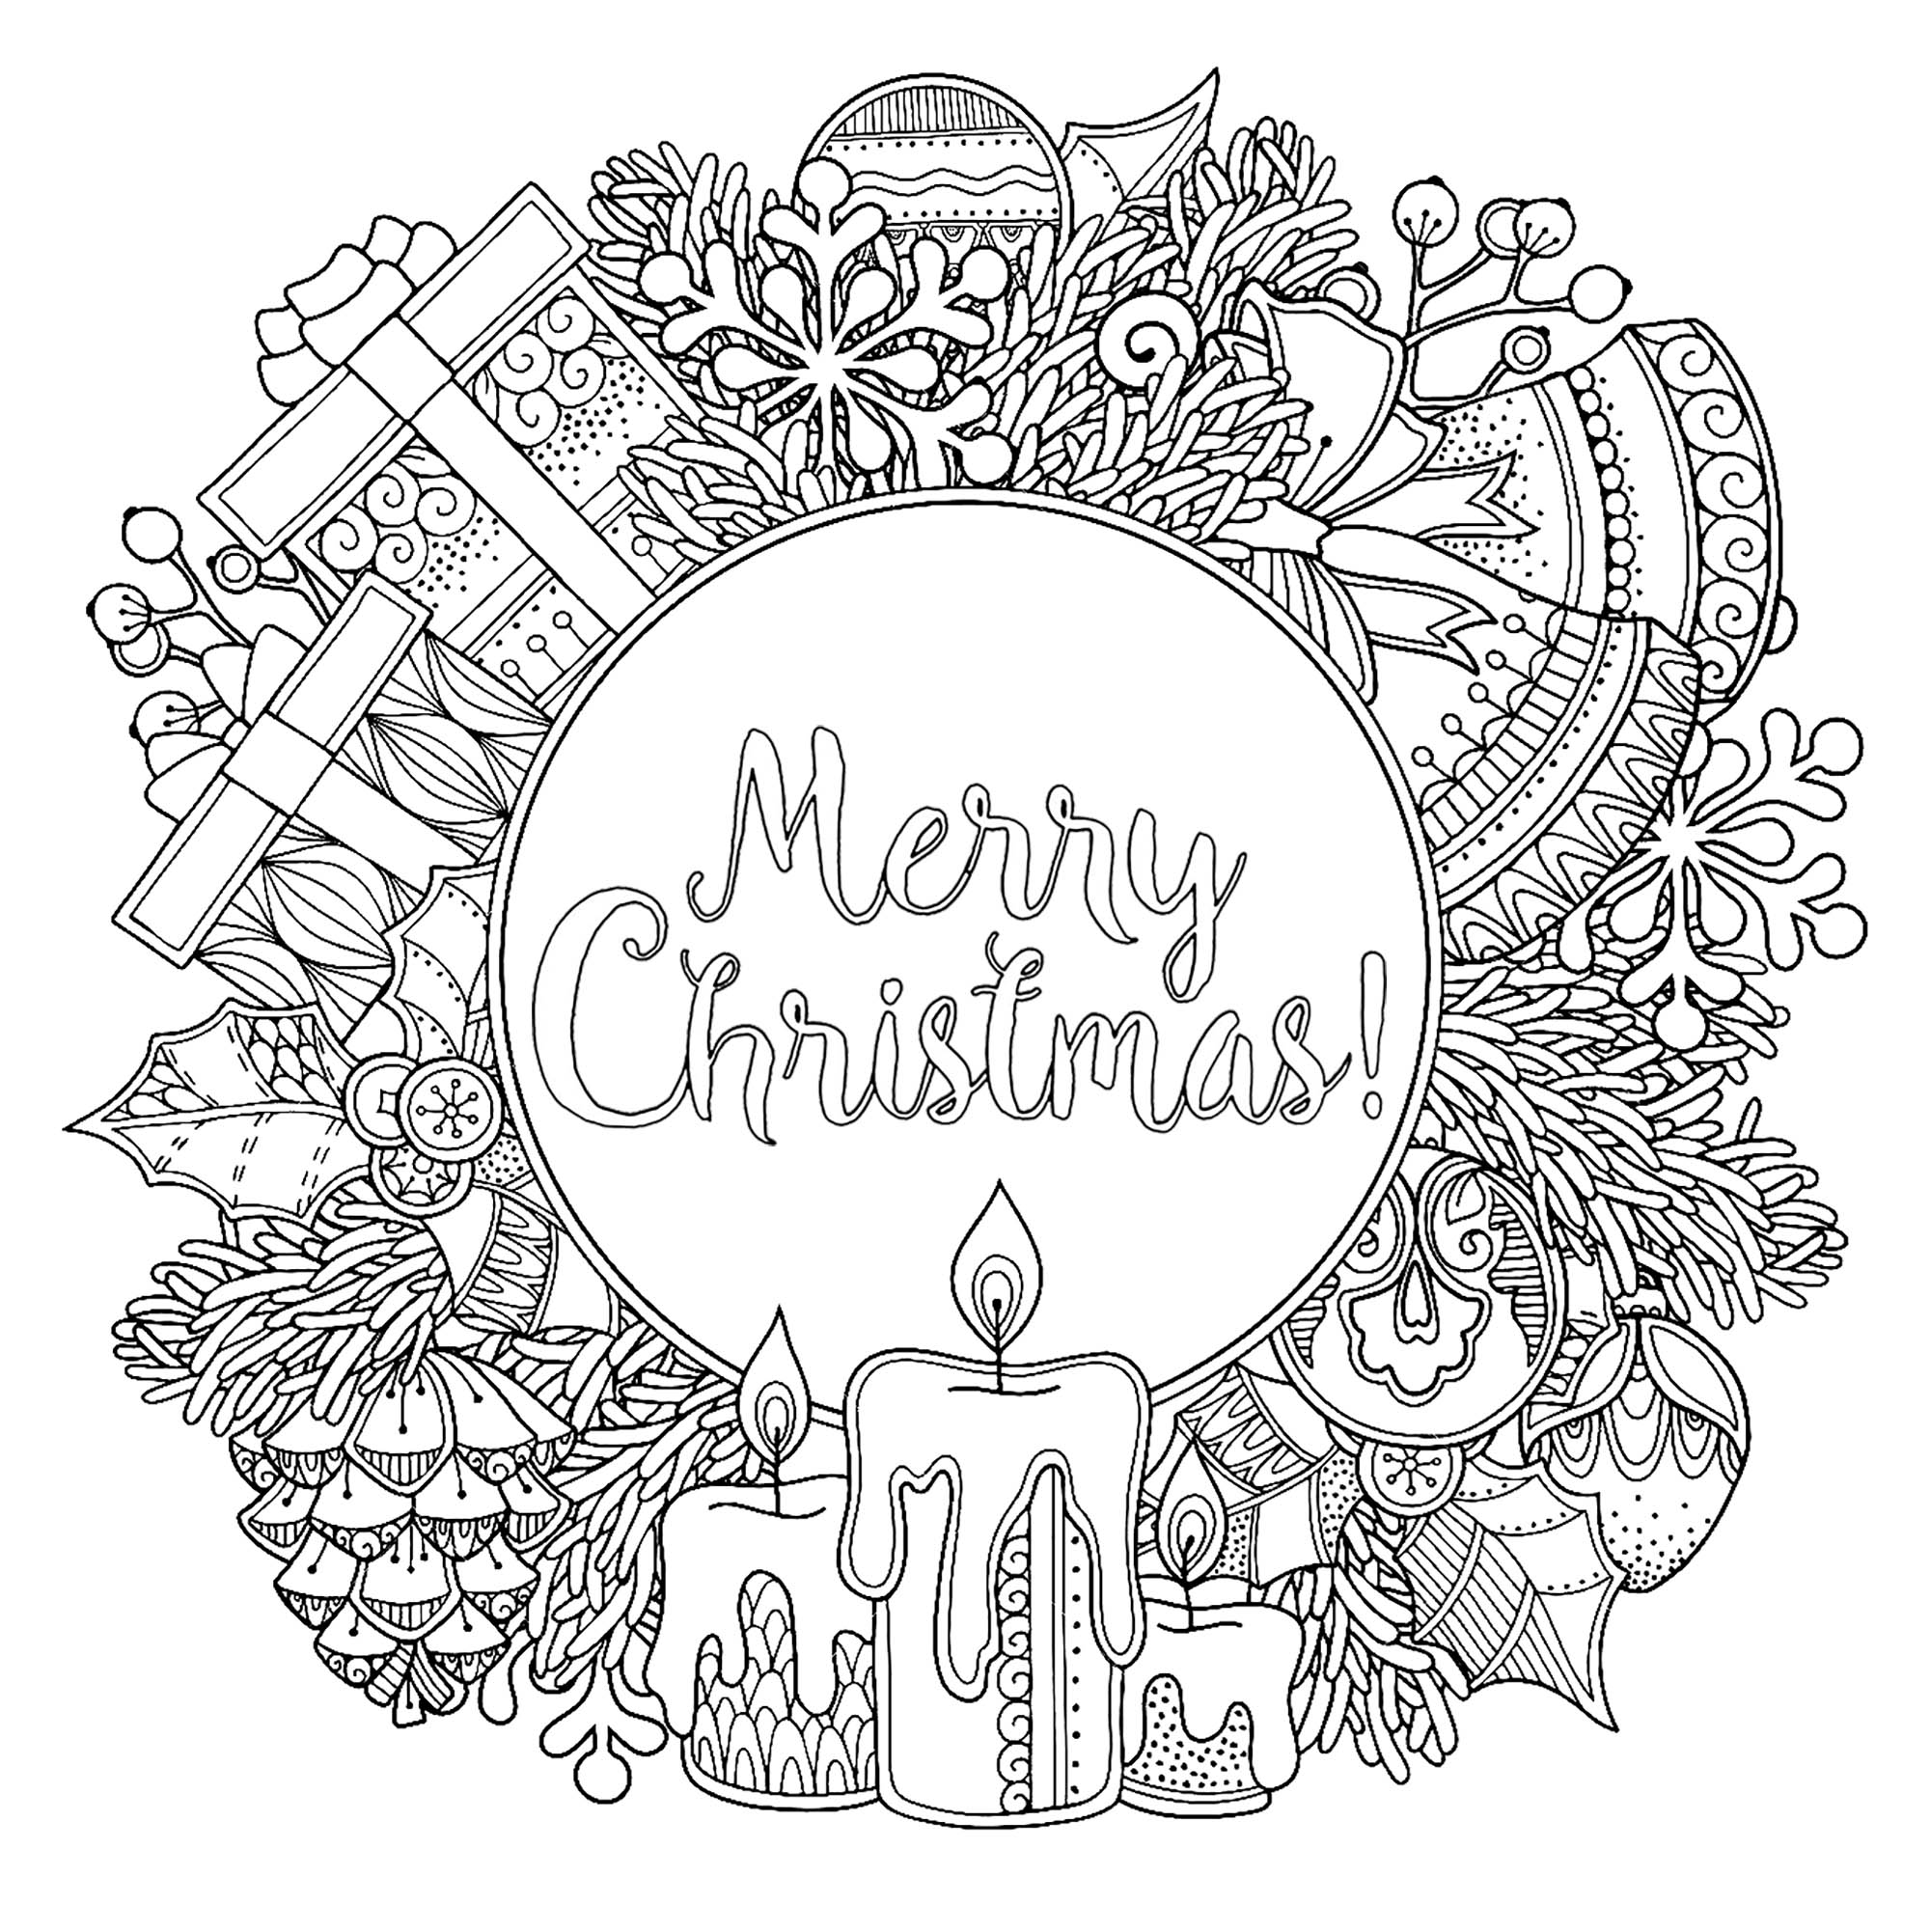 Coloriage Circulaire Merry Christmas